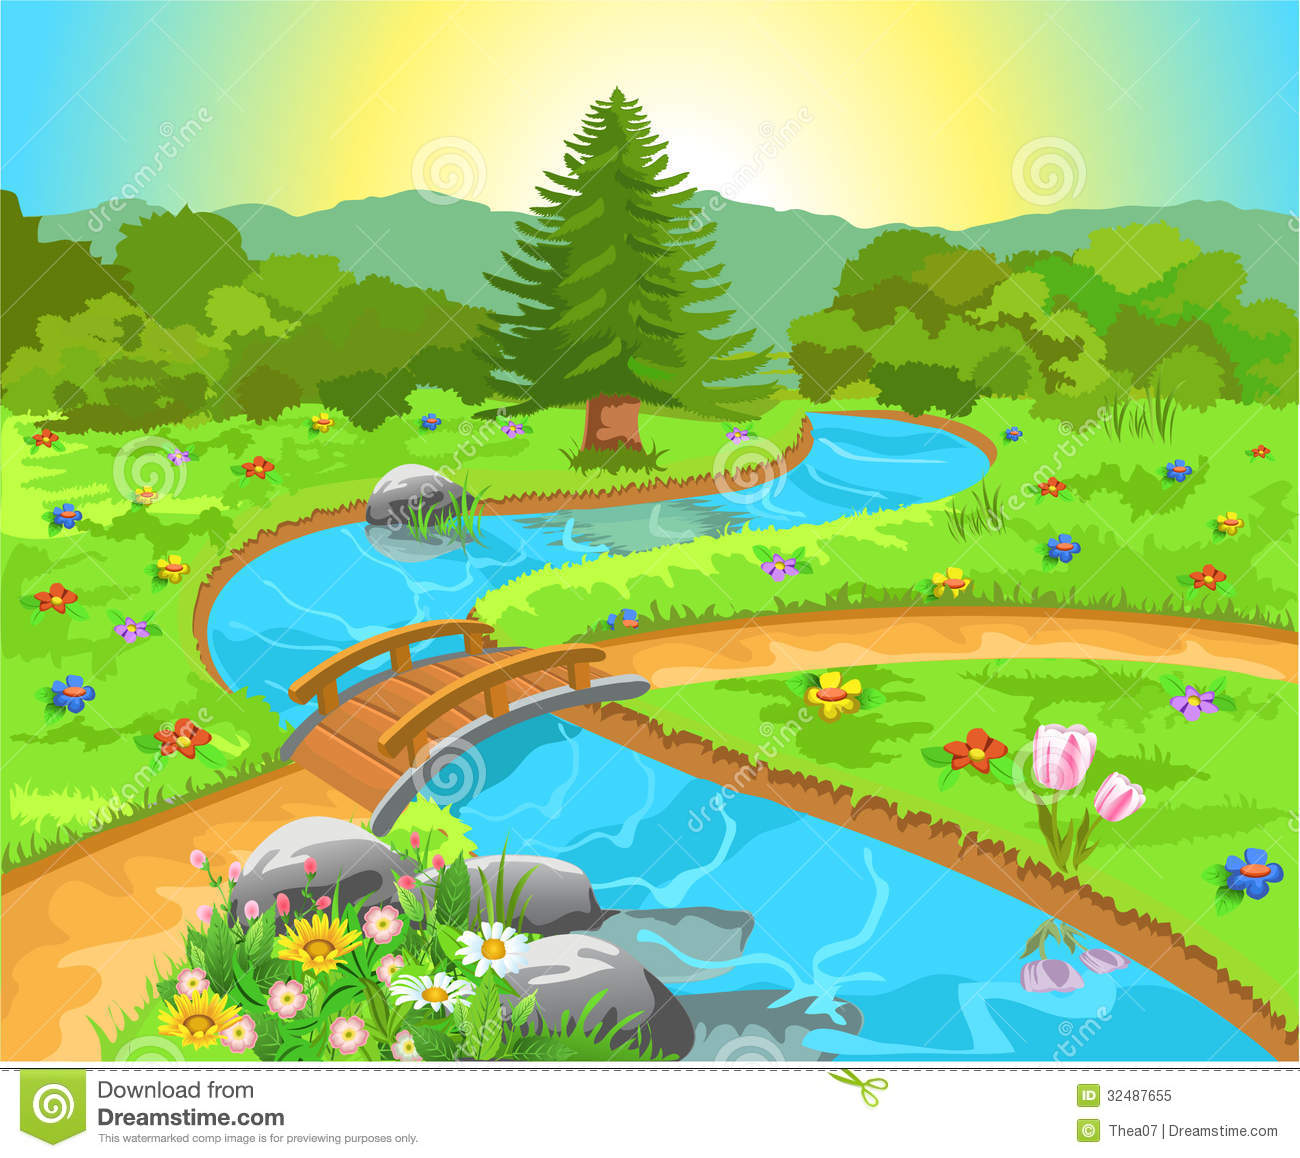 Colorful nature hd clipart.